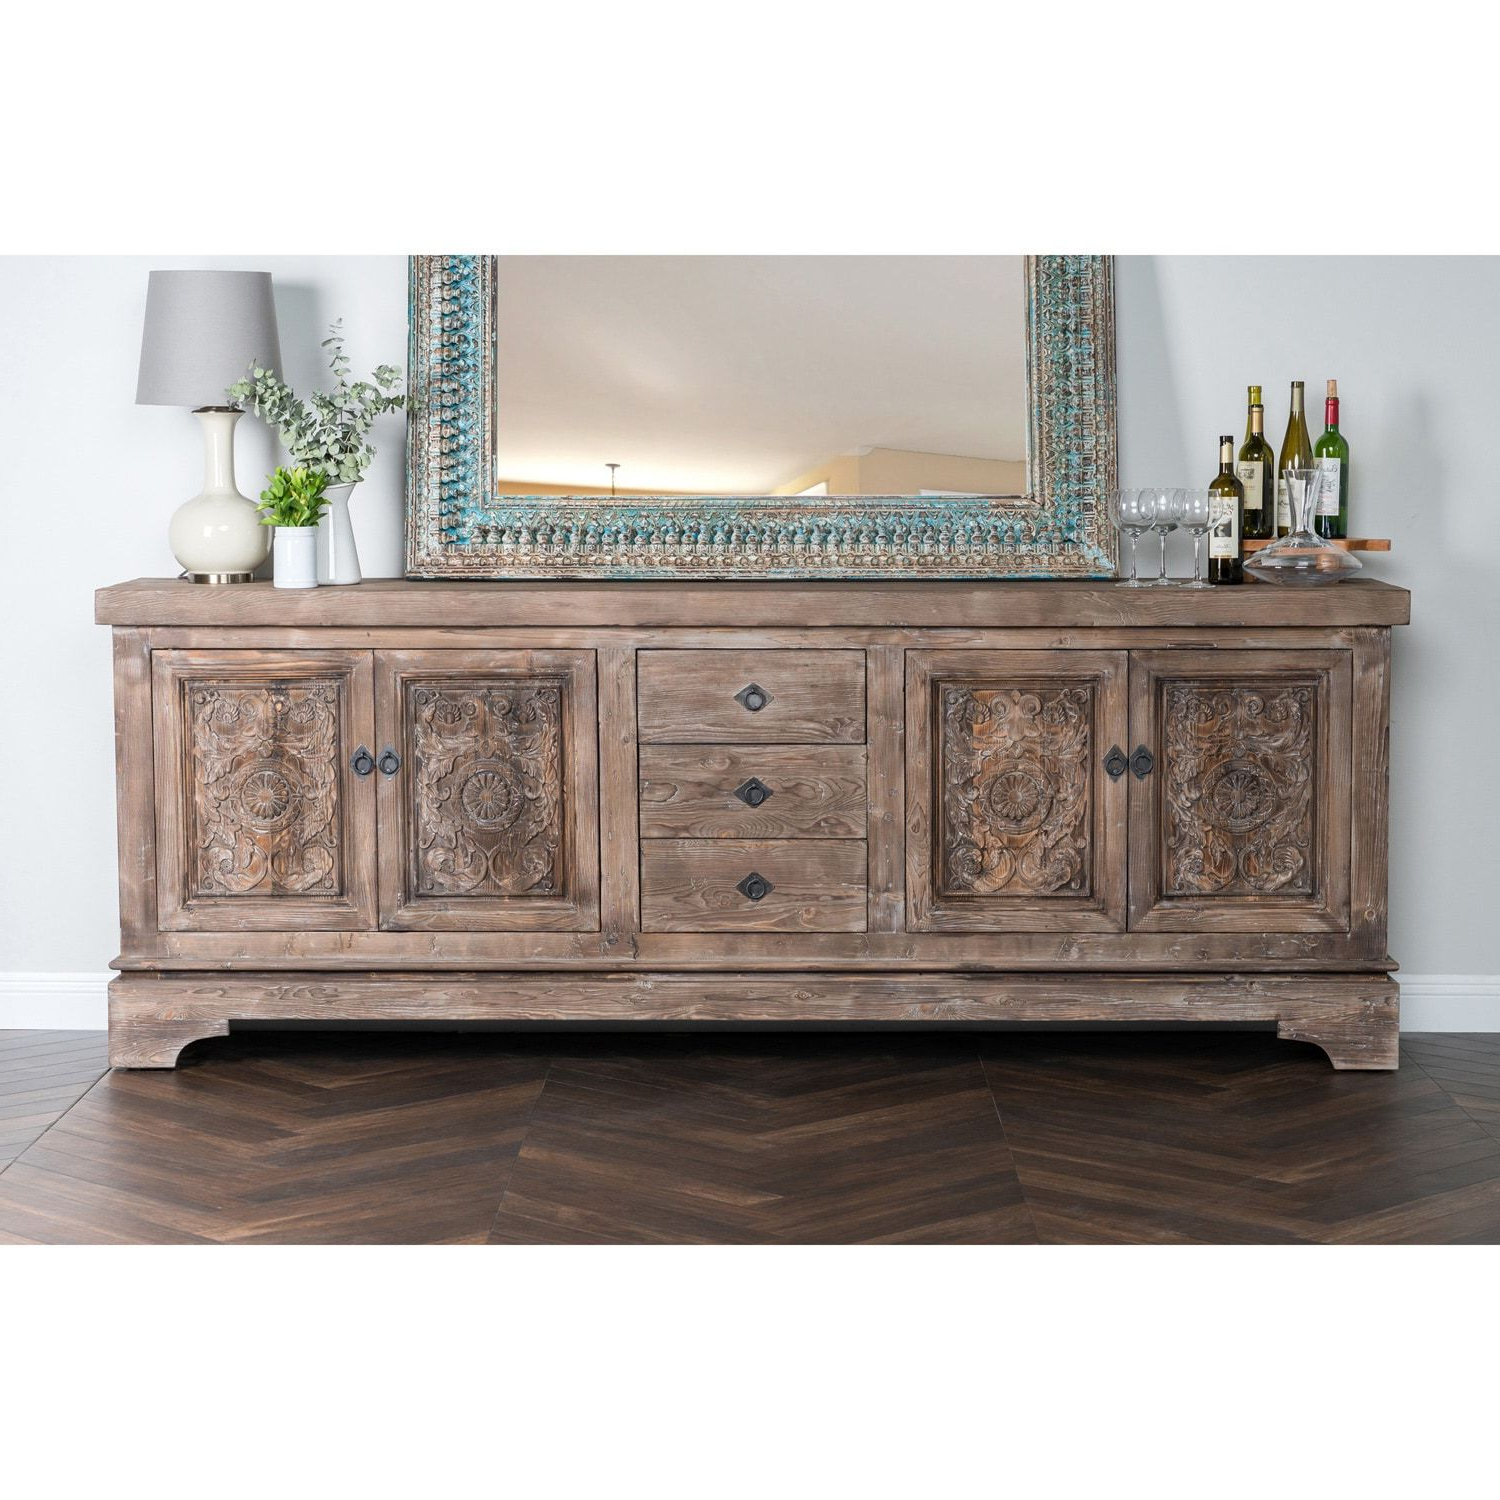 Allen Rustic Taupe Reclaimed Pine 106 Inch Sideboard With Regard To Chalus Sideboards (View 13 of 20)